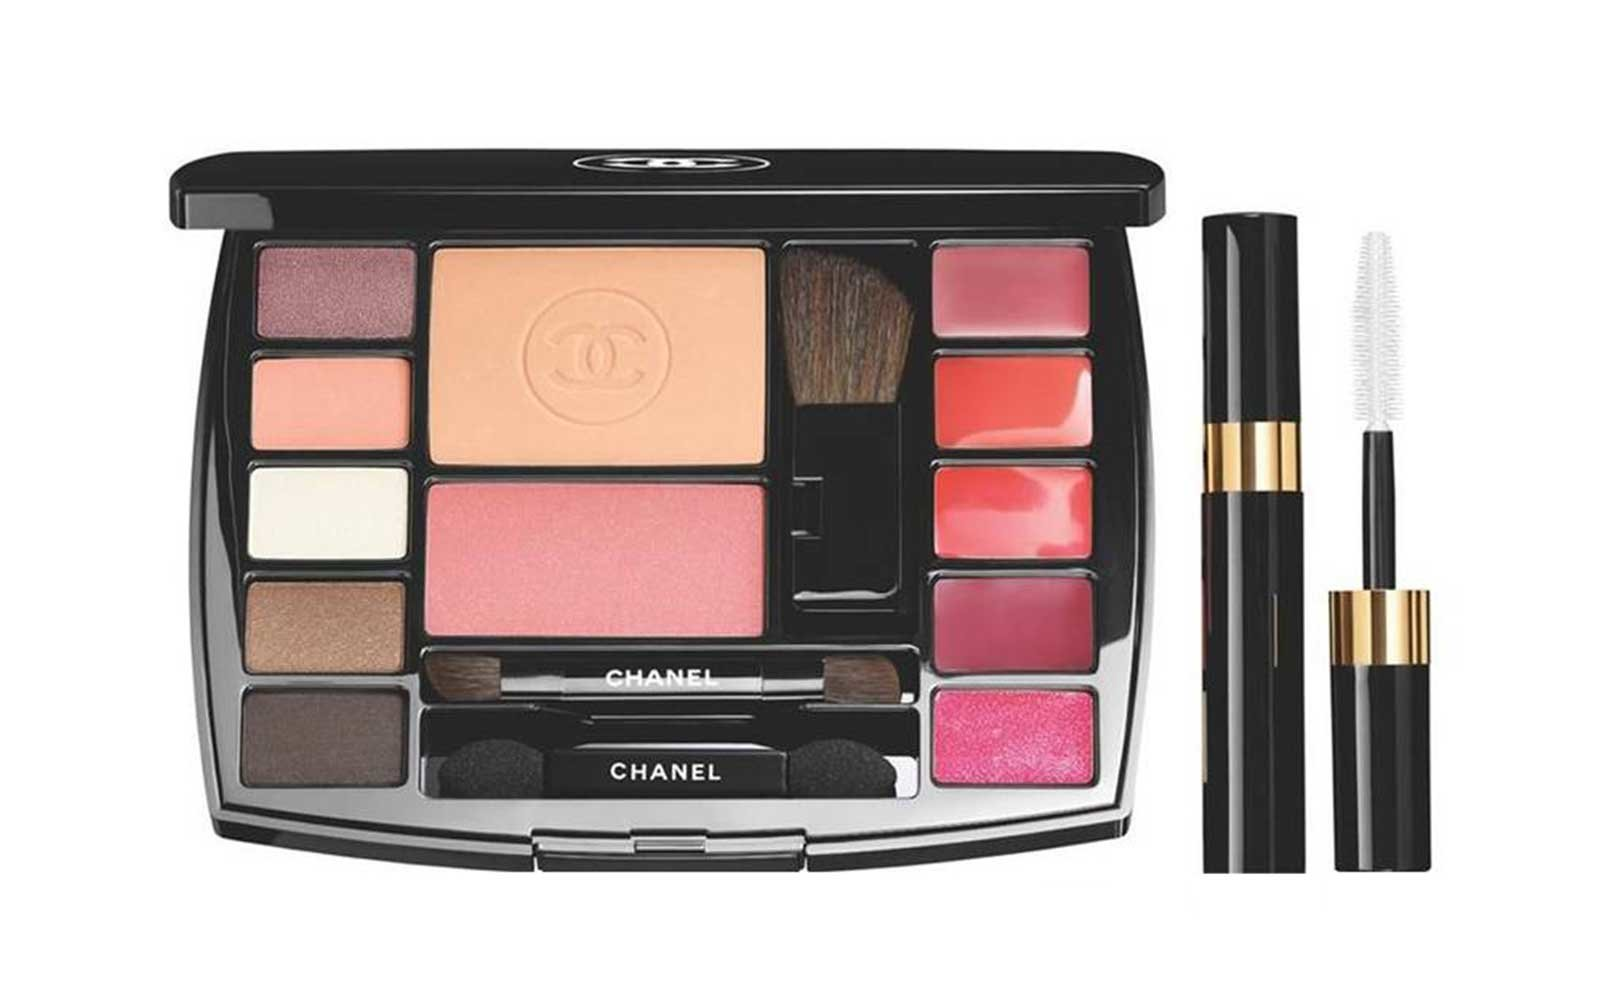 Chanel makeup palette